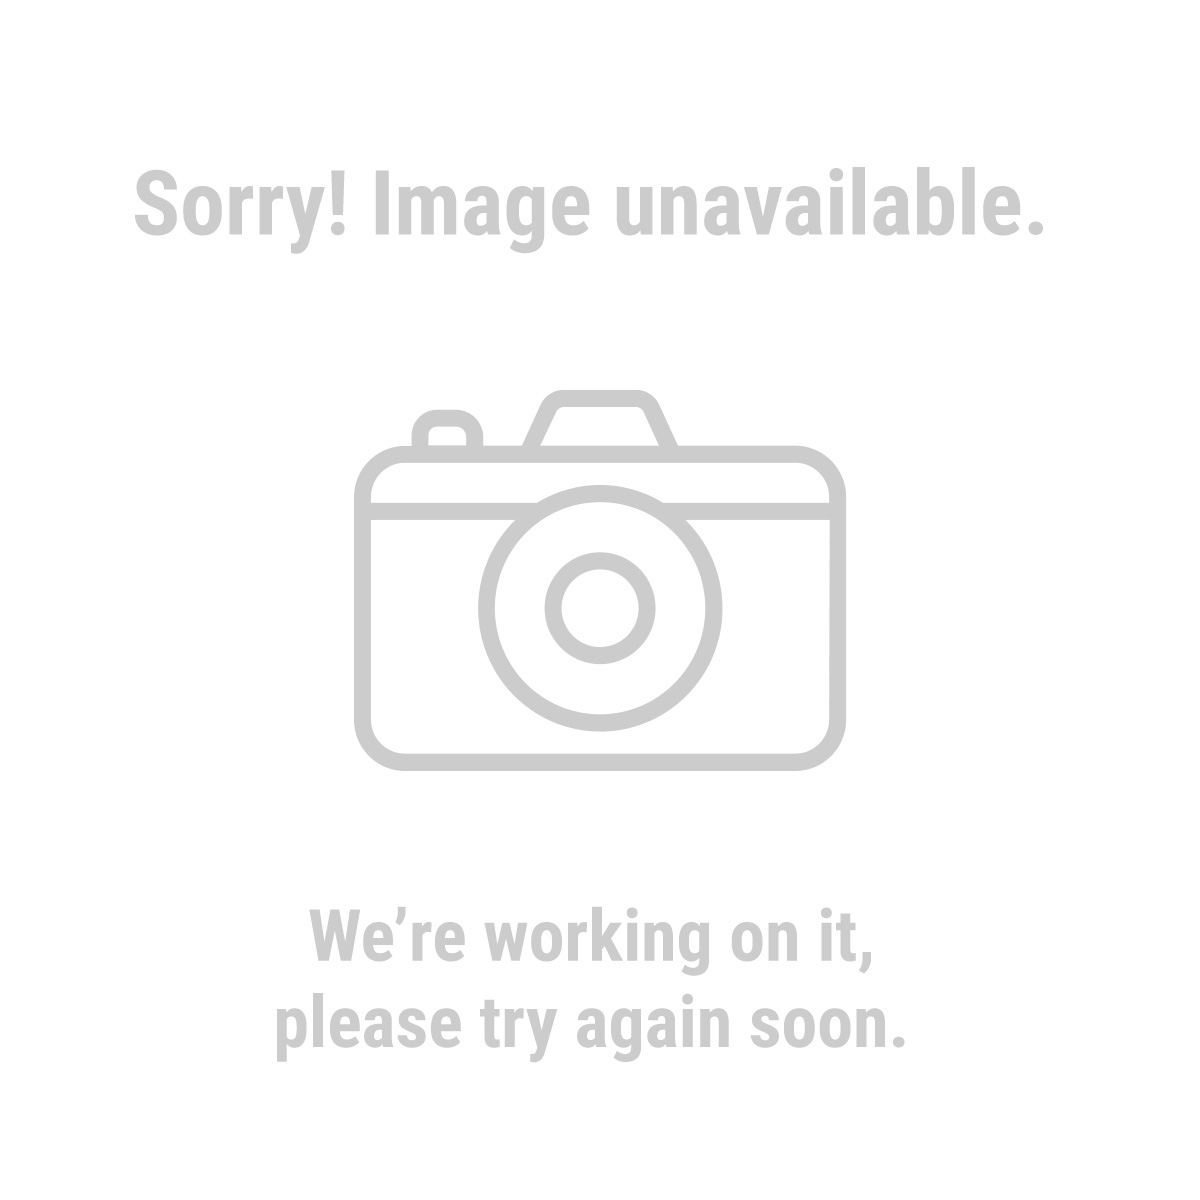 Chicago Electric Power Tools 96127 1500 Lb. Capacity 120 Volt AC Electric Winch